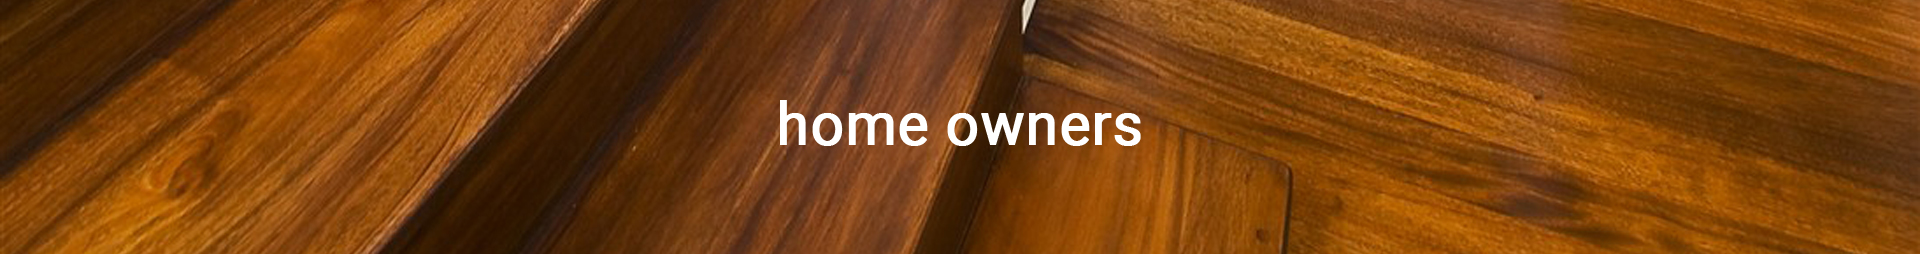 home-owners